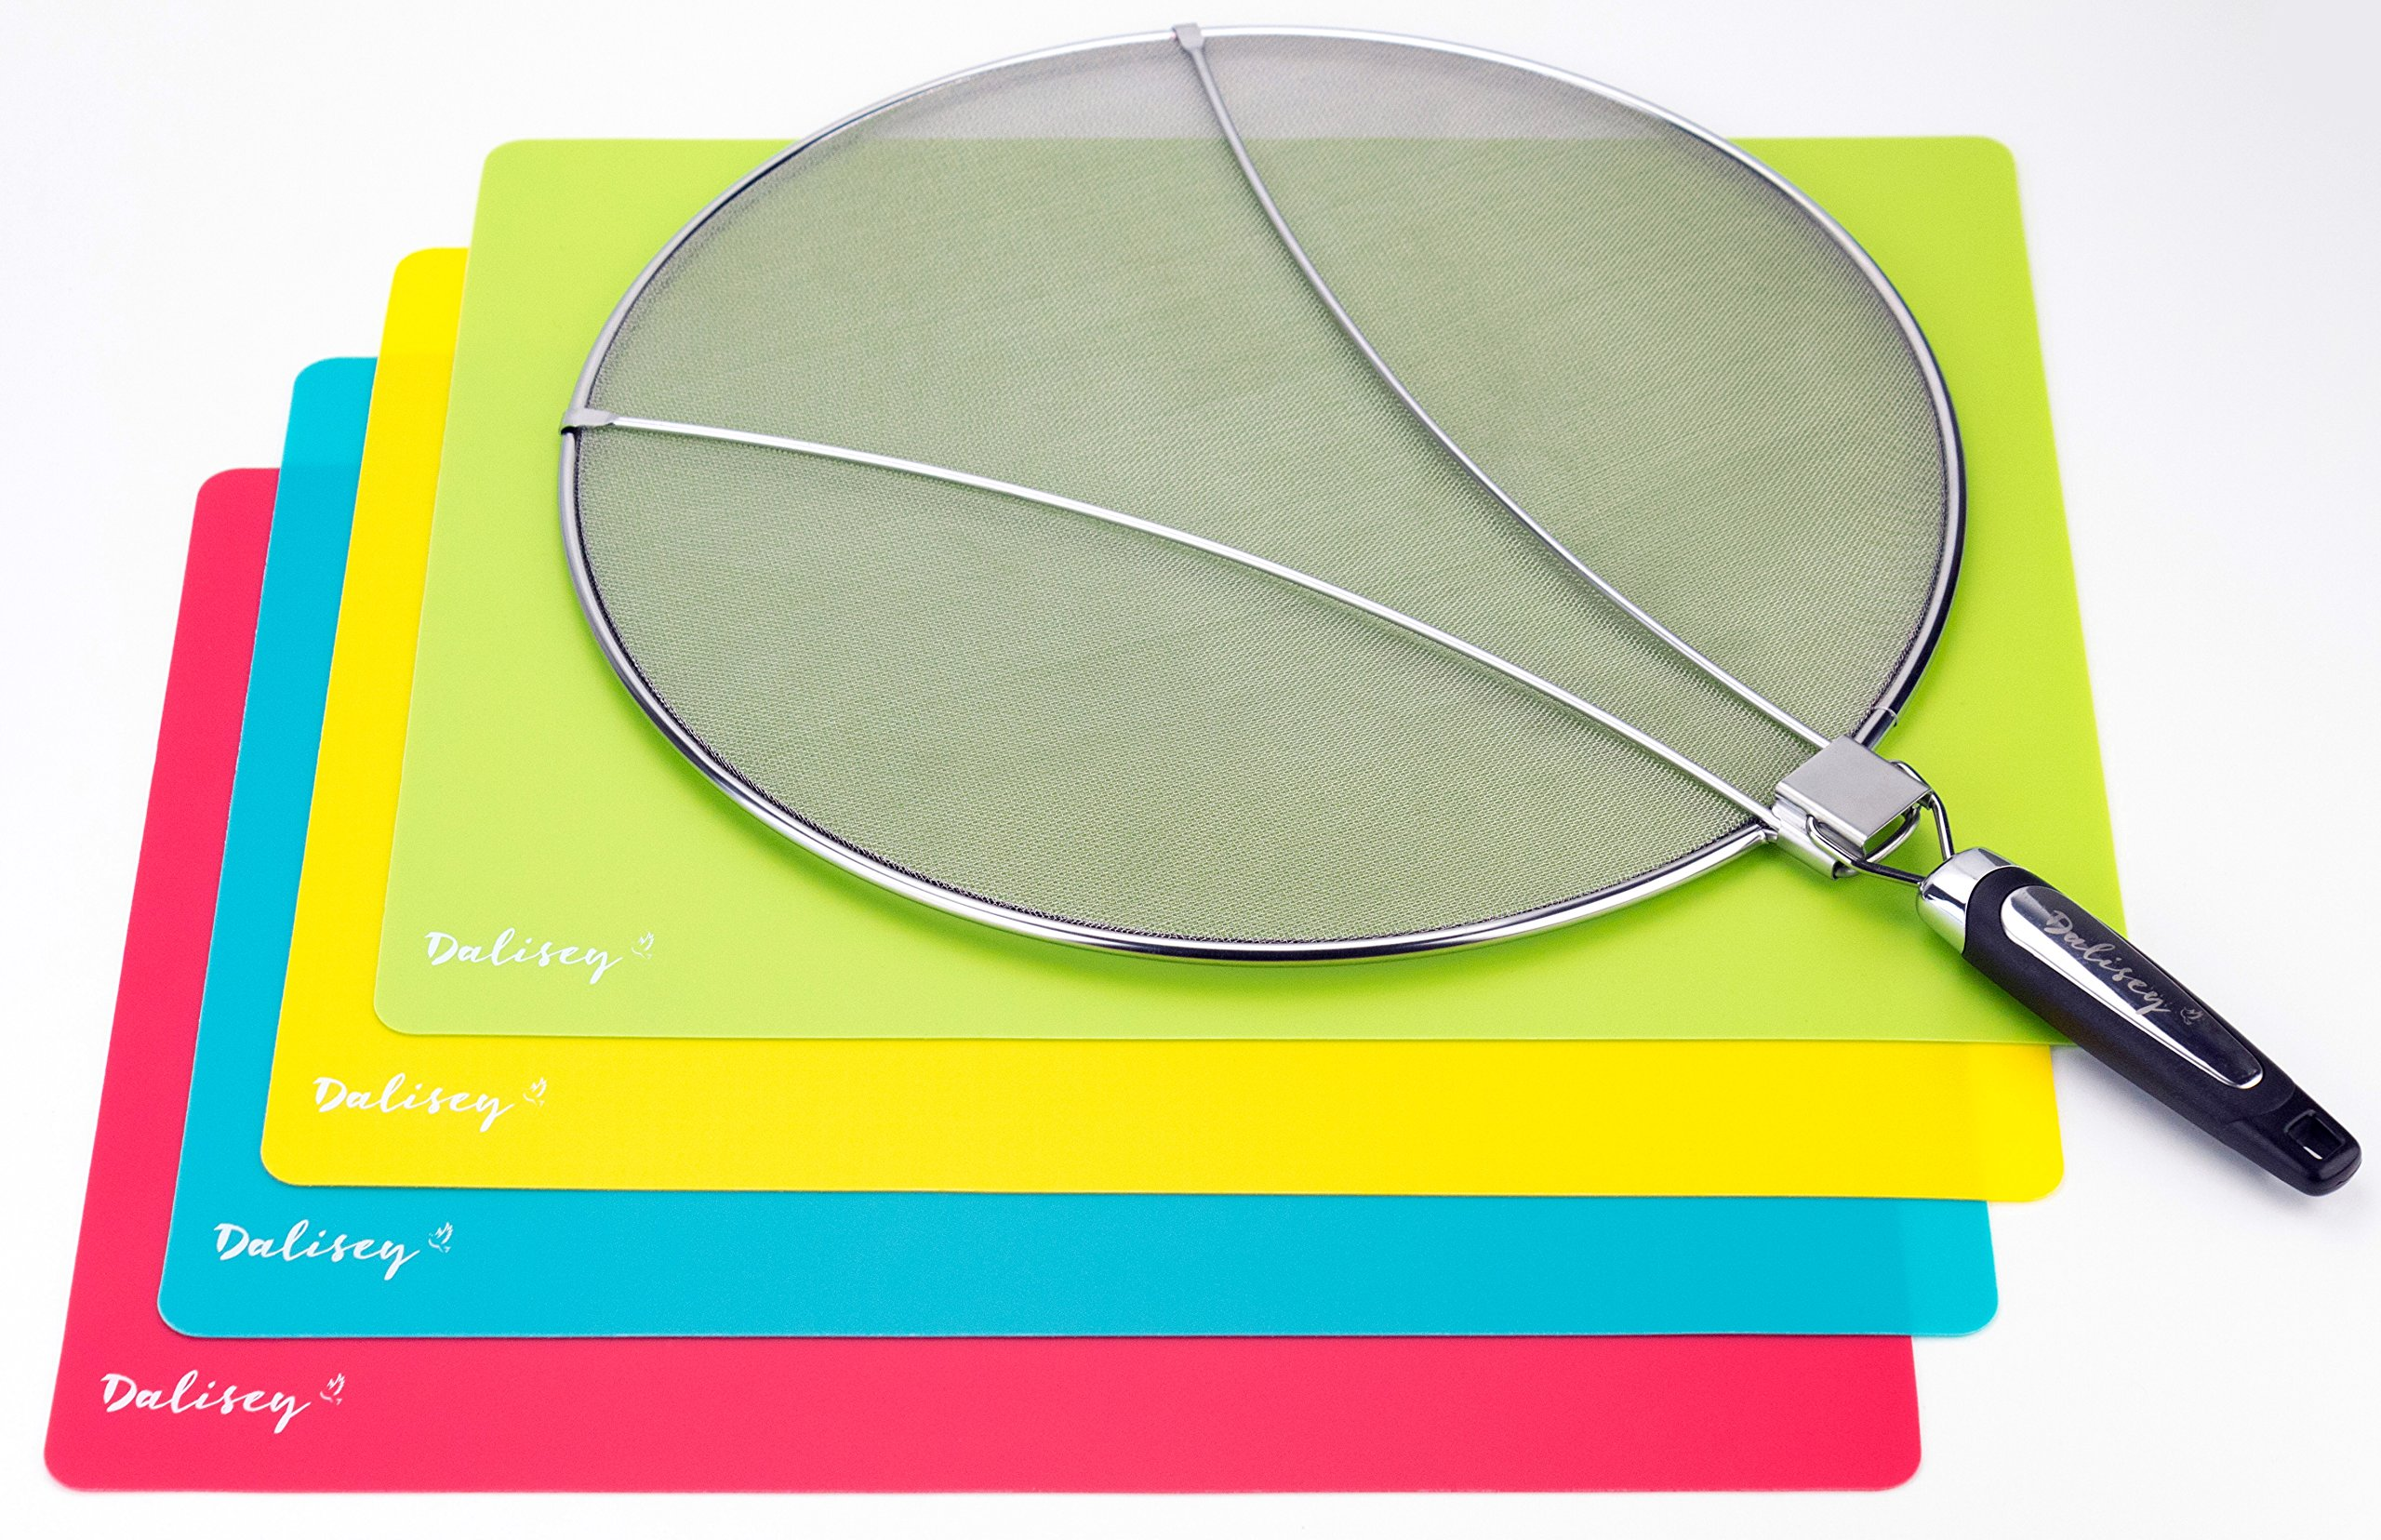 Dalisey 13'' Grease Splatter Screen w/ 4 Plastic Cutting Mats   Stainless-Steel Splash Guard, Ultra-Fine Mesh   Foldable, Heat-Resistant Handle for Safer Cooking, Frying Hot Oils